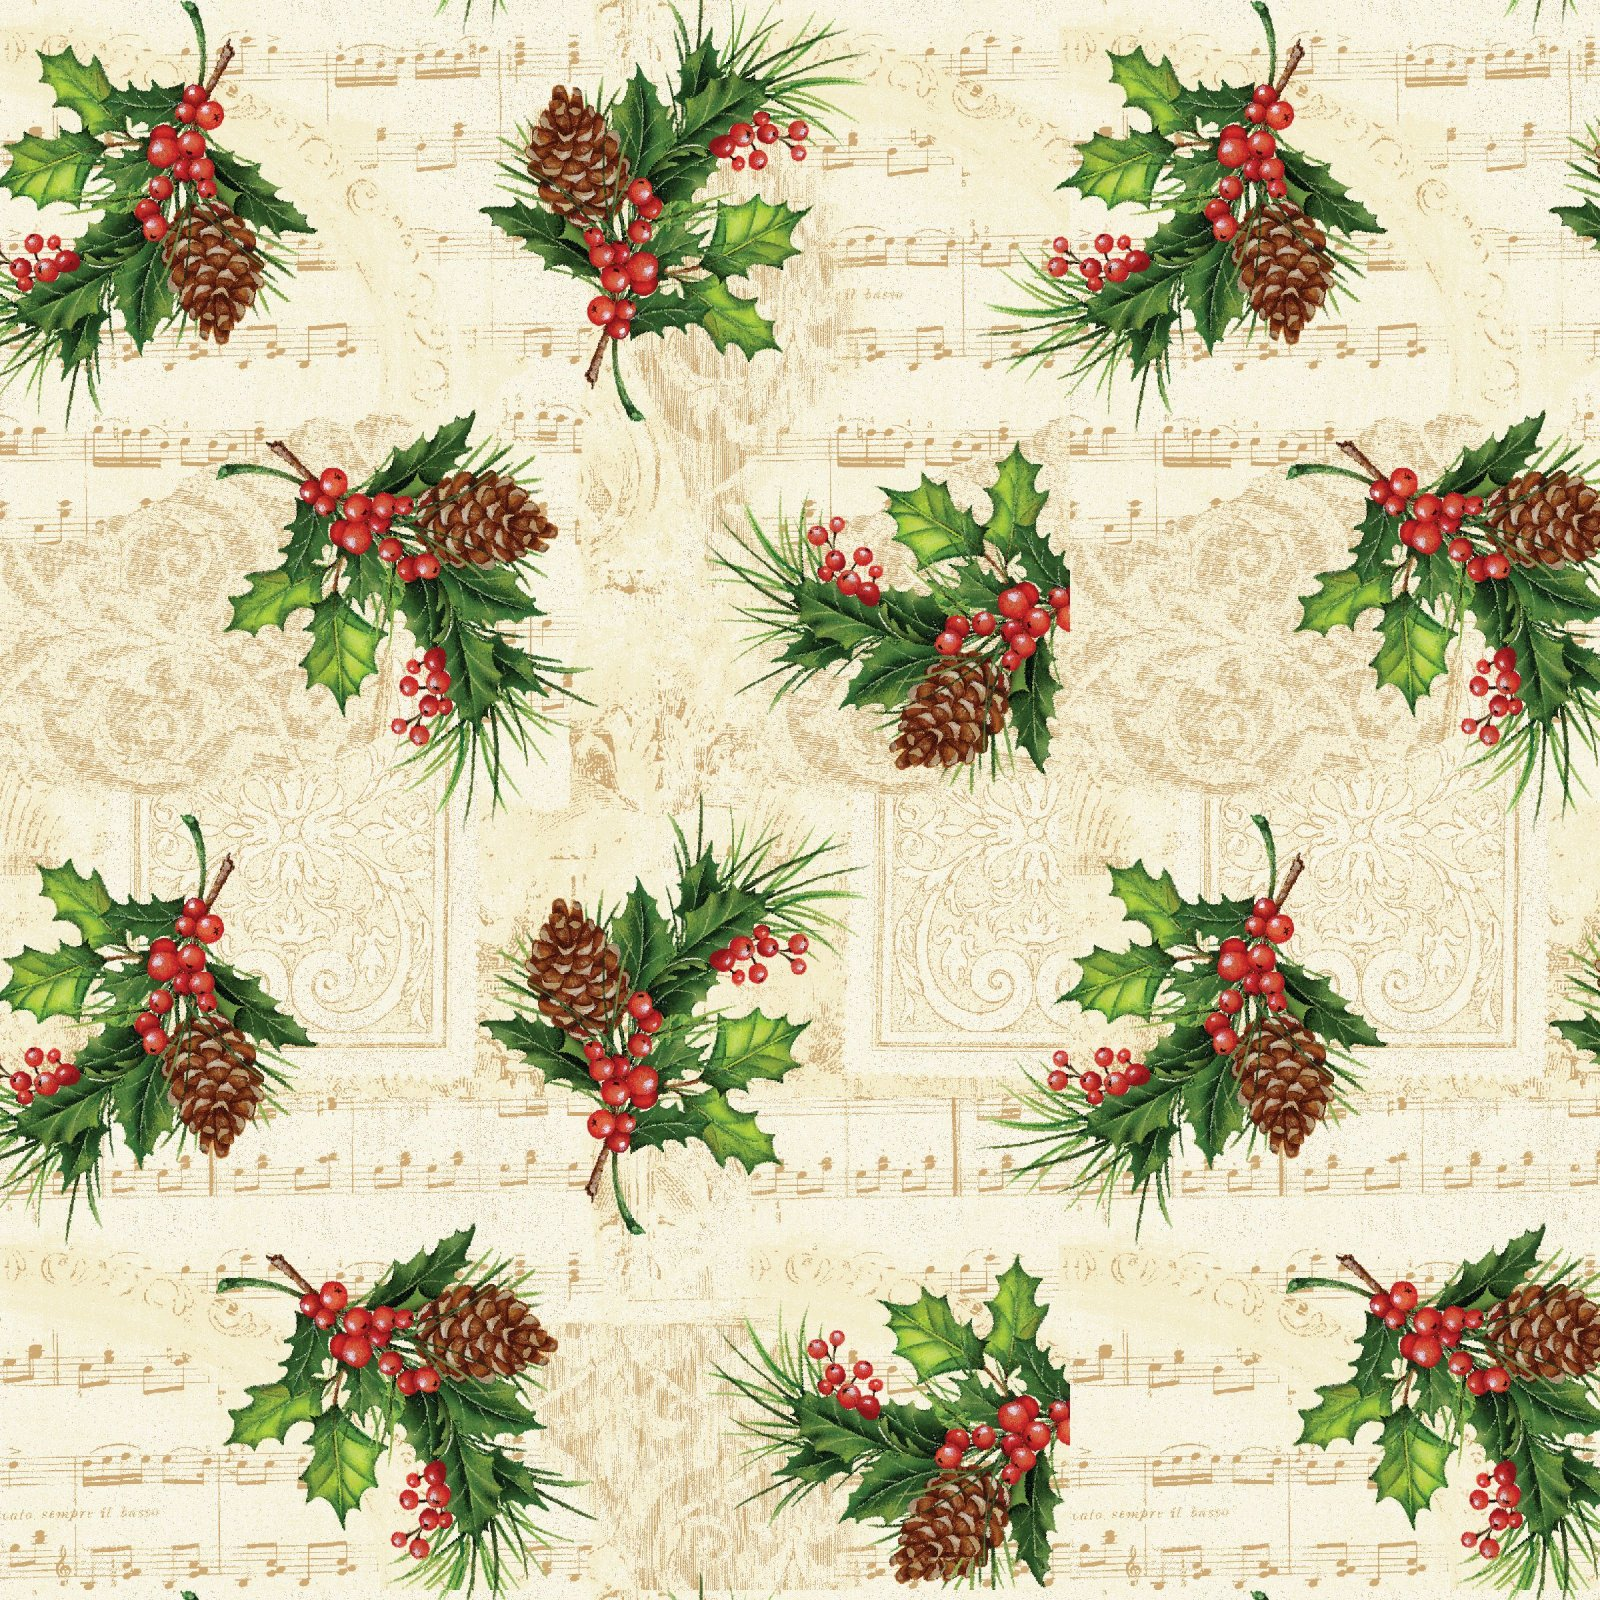 HG-Christmas Legend 9516-44 Cream - Holly Leaf and Berry